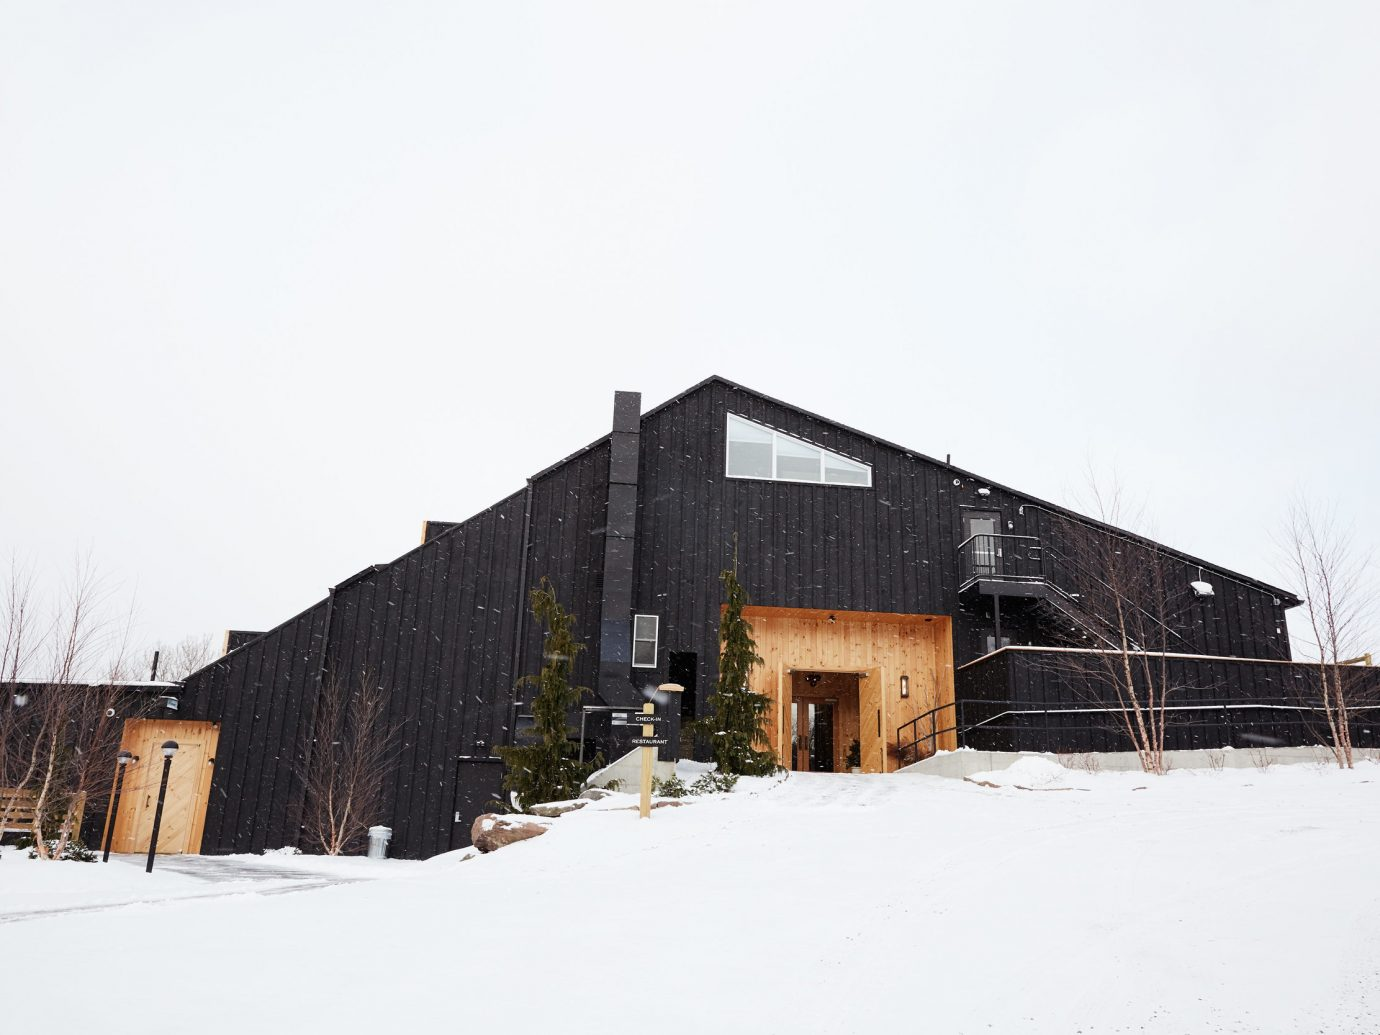 alpine skiing East Coast USA Secret Getaways Trip Ideas snow outdoor sky building Winter house property home Architecture residential area wood barn facade roof shed freezing farm building Town